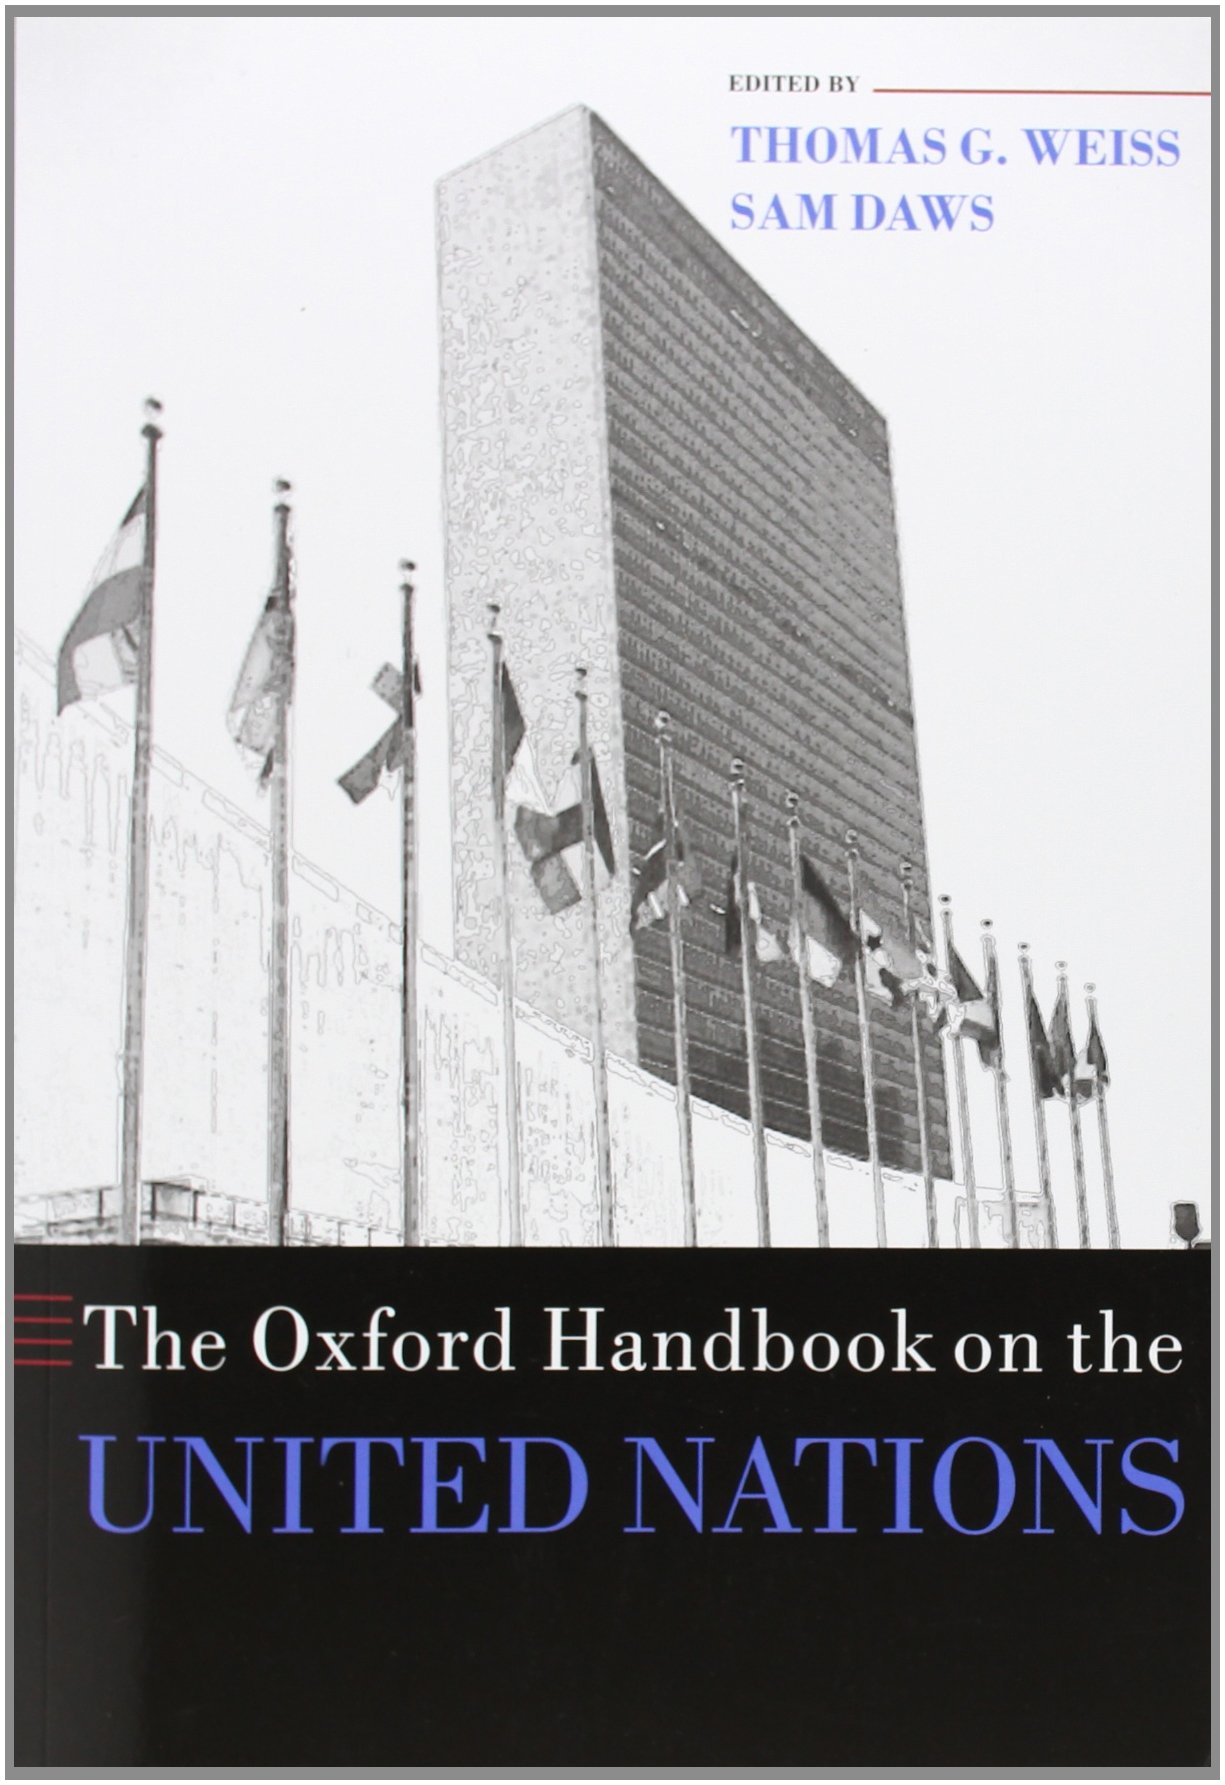 The Oxford Handbook on the United Nations (Oxford Handbooks) by Oxford University Press USA